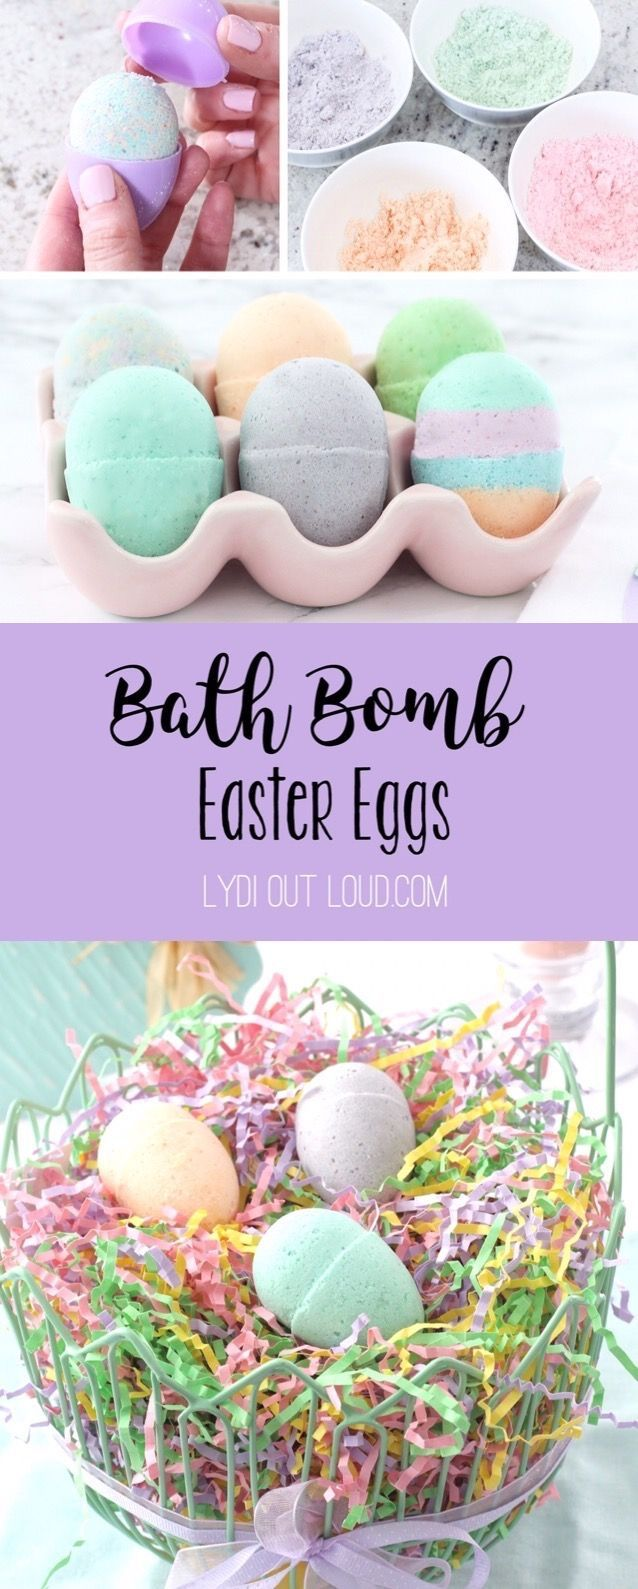 Diy bath bomb easter eggs diy bath bomb easter eggs what a cute easter basket stuffer or holiday hostess gift negle Images